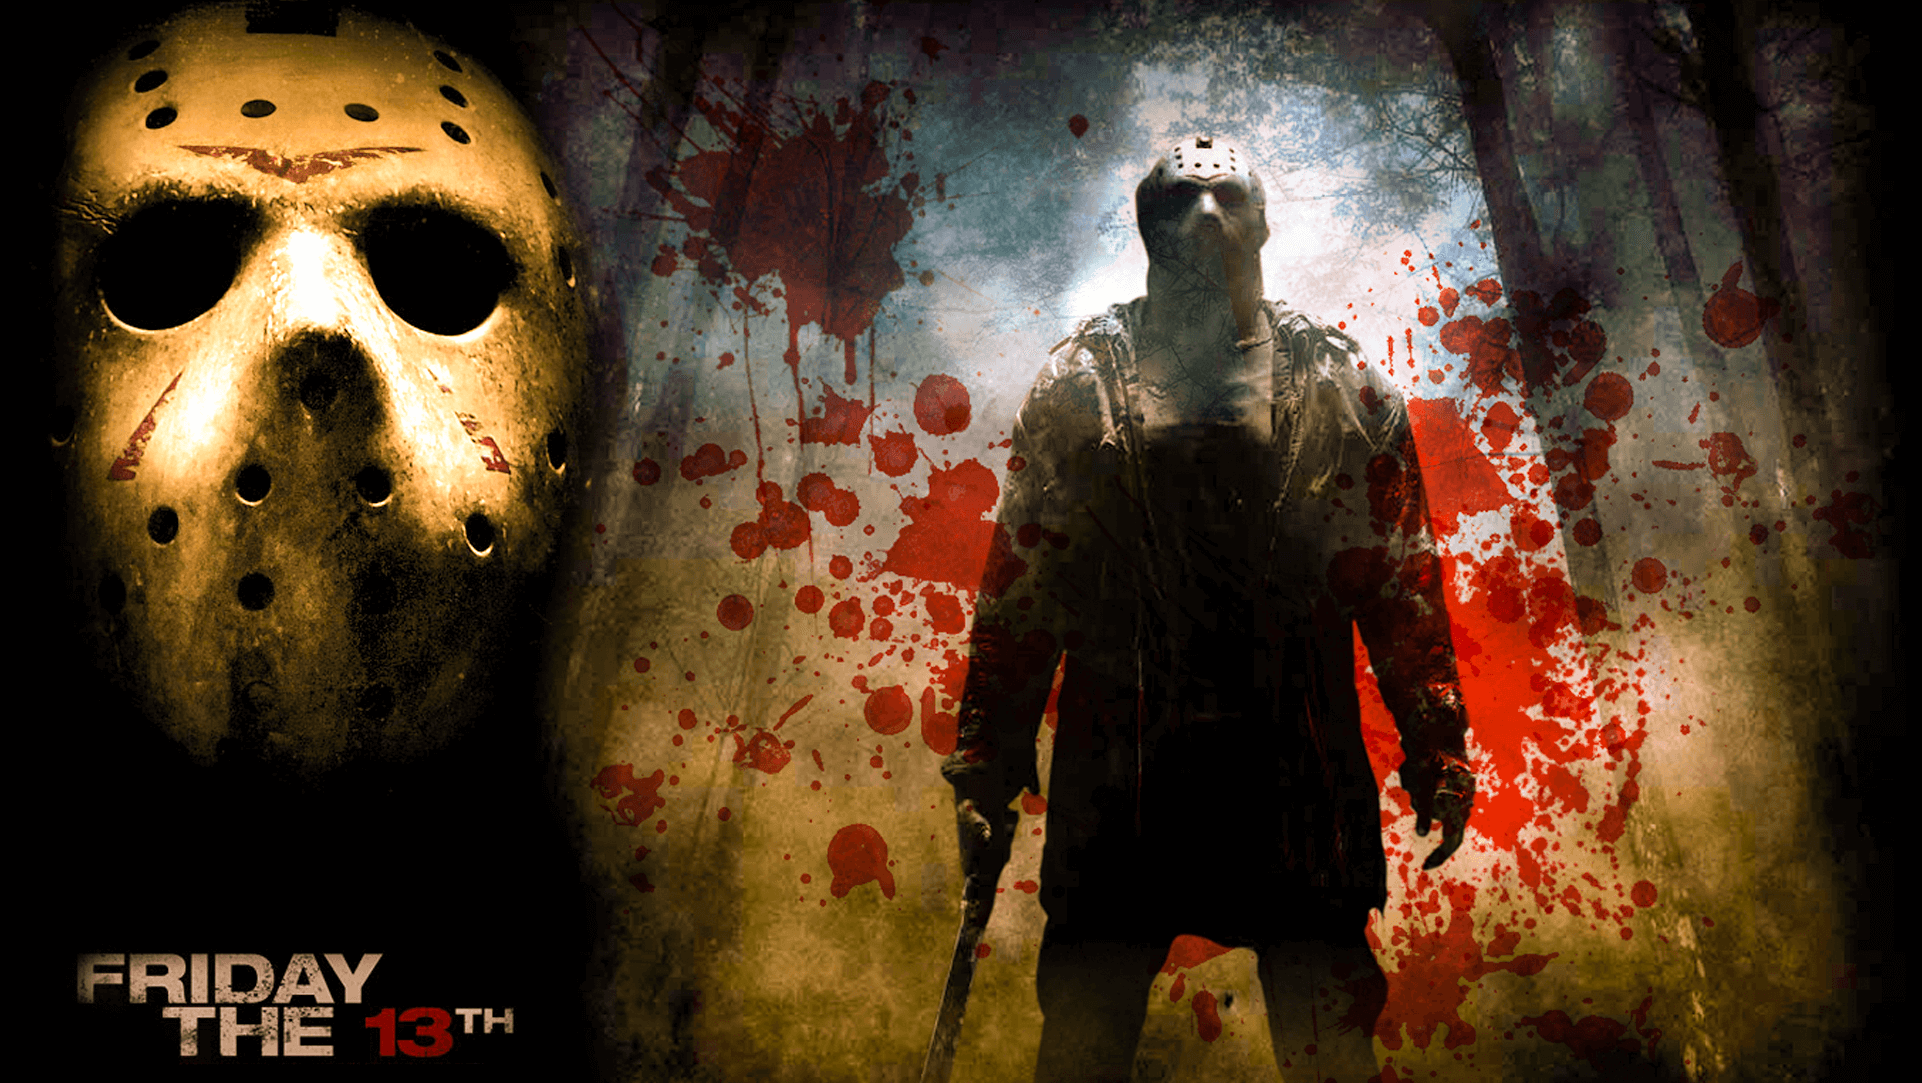 Latest Friday the 13th